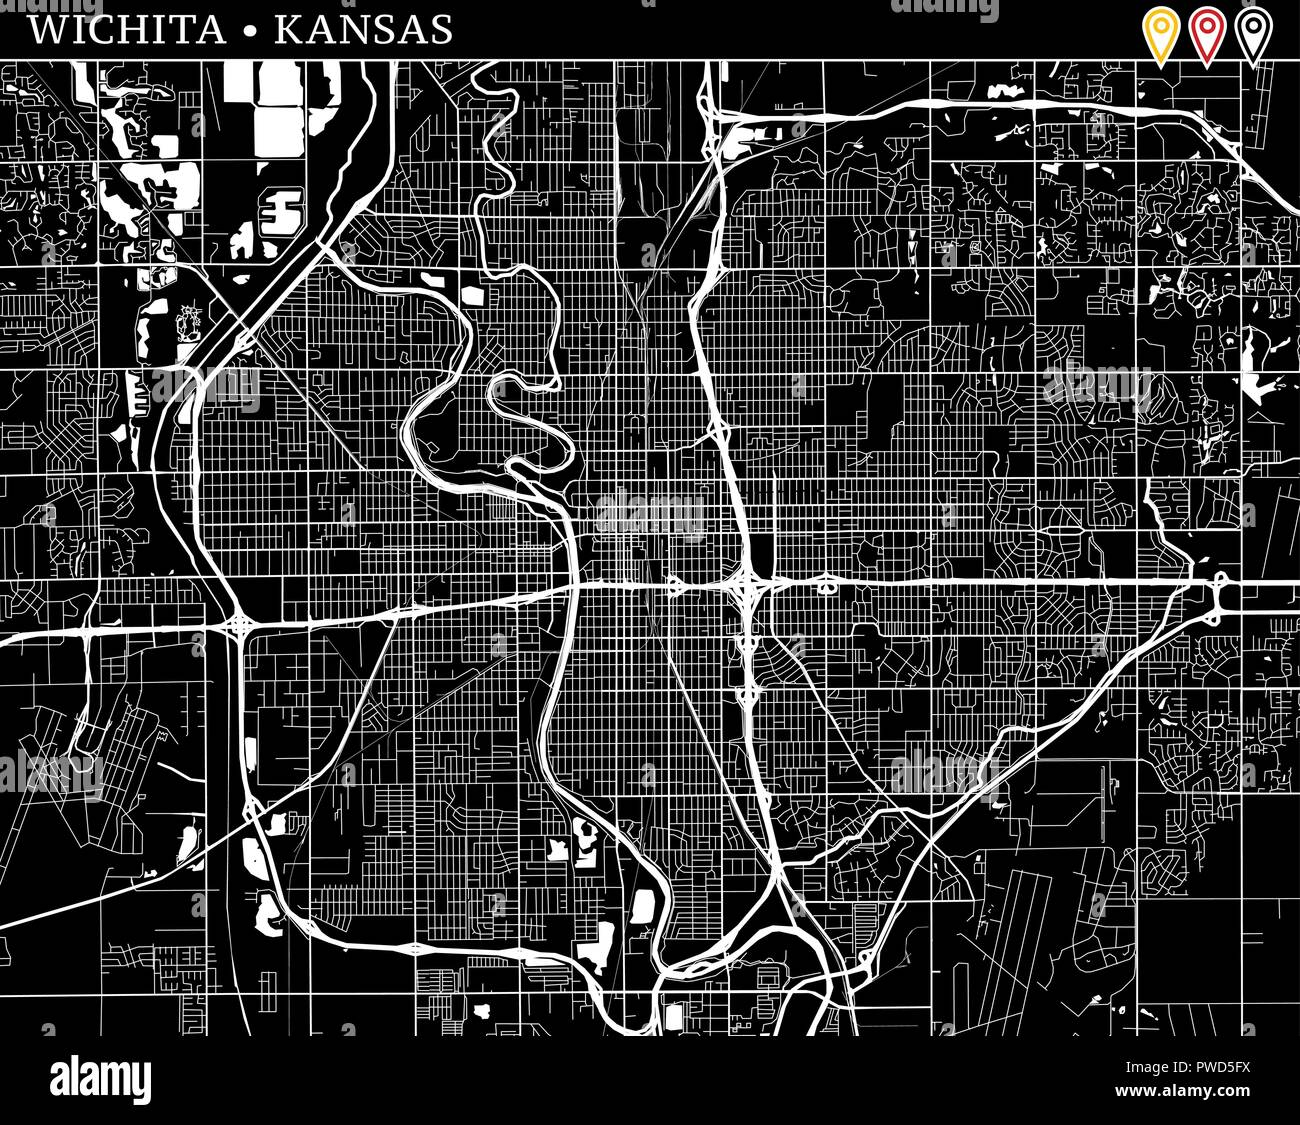 Simple Map Of Wichita Kansas Usa Black And White Version For